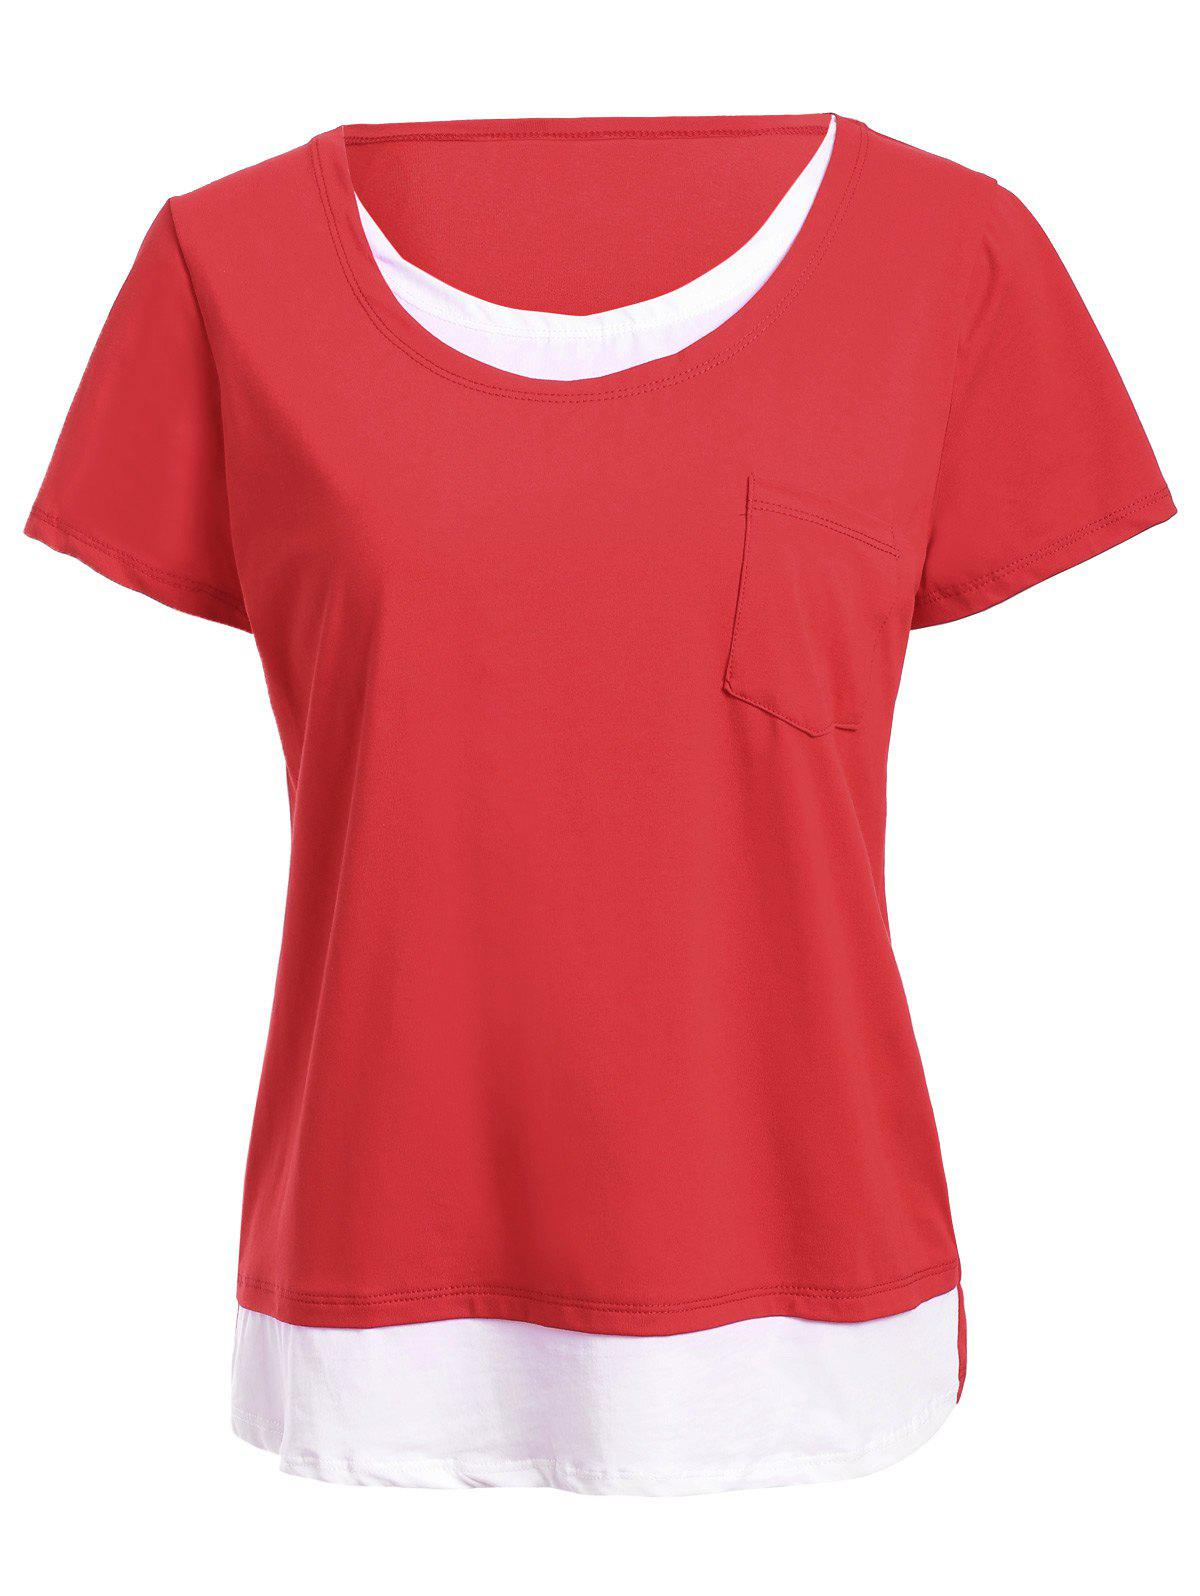 Brief Short Sleeve Patchwork Faux Twinset Tee For Women